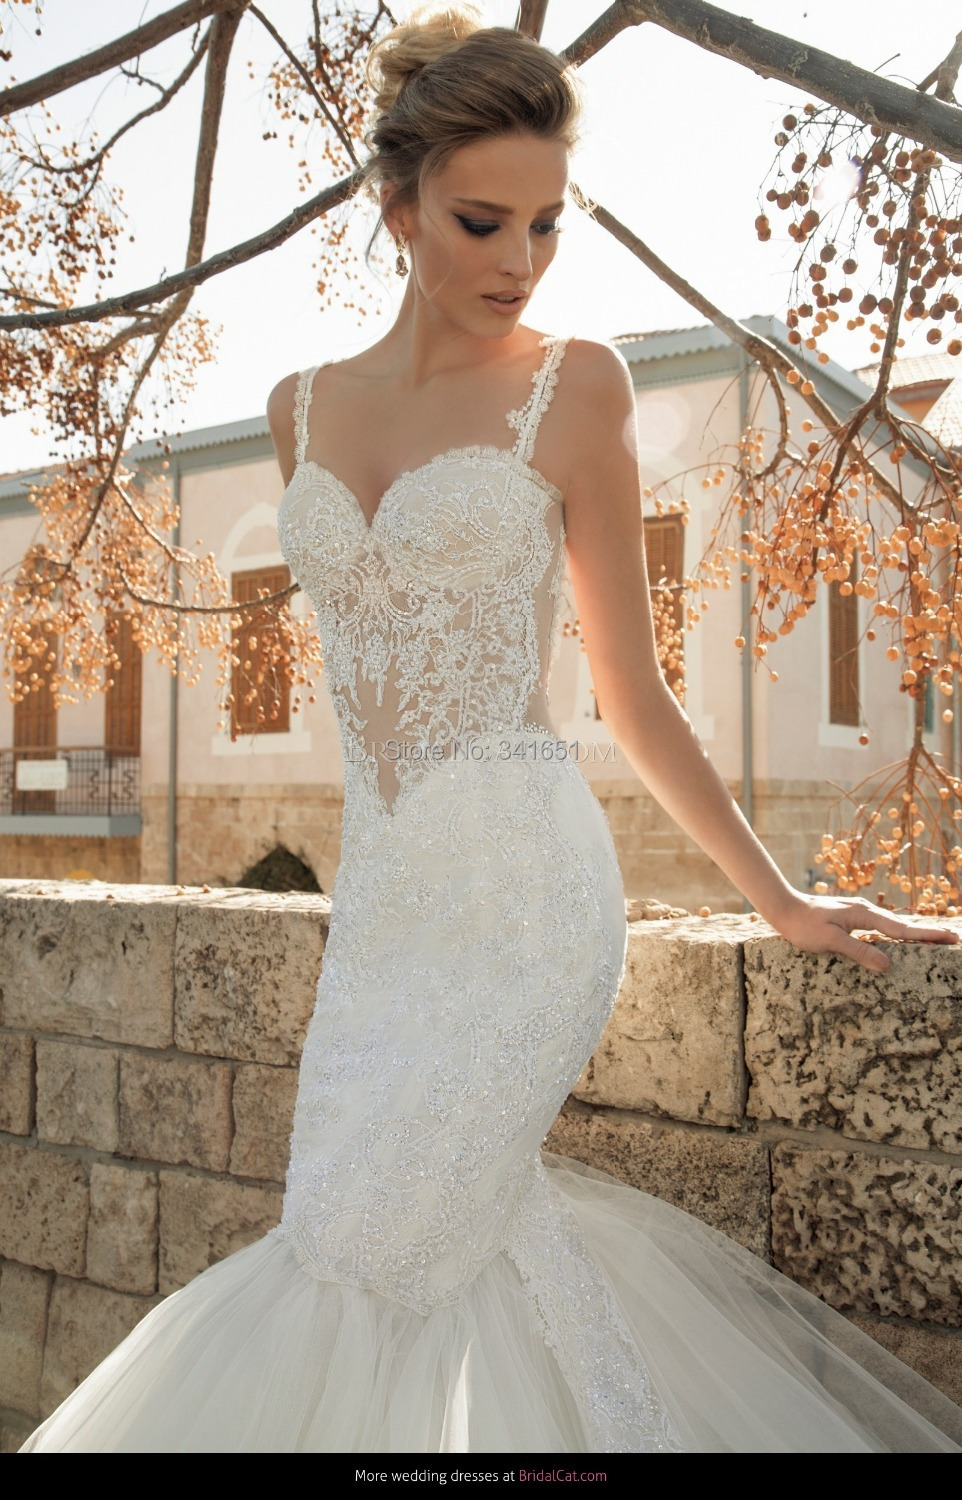 Wedding Dresses Custom Made | Weddings Dresses